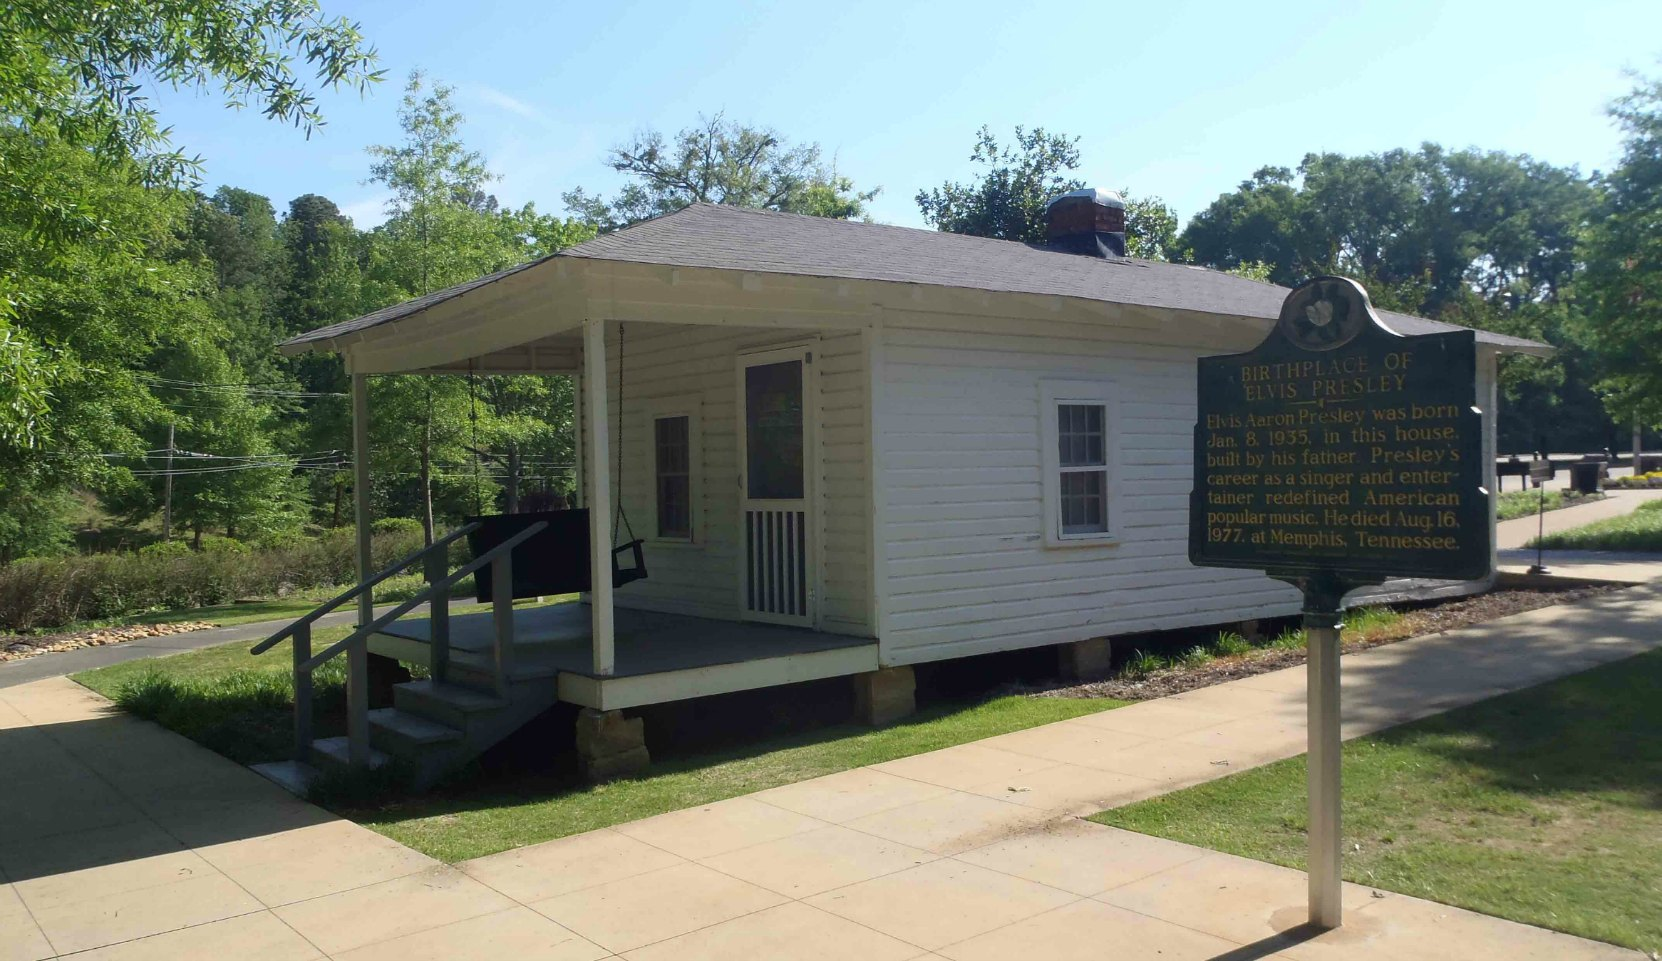 The house Elvis Presley was born in, Elvis Presley Birthplace Museum, Tupelo, Mississippi